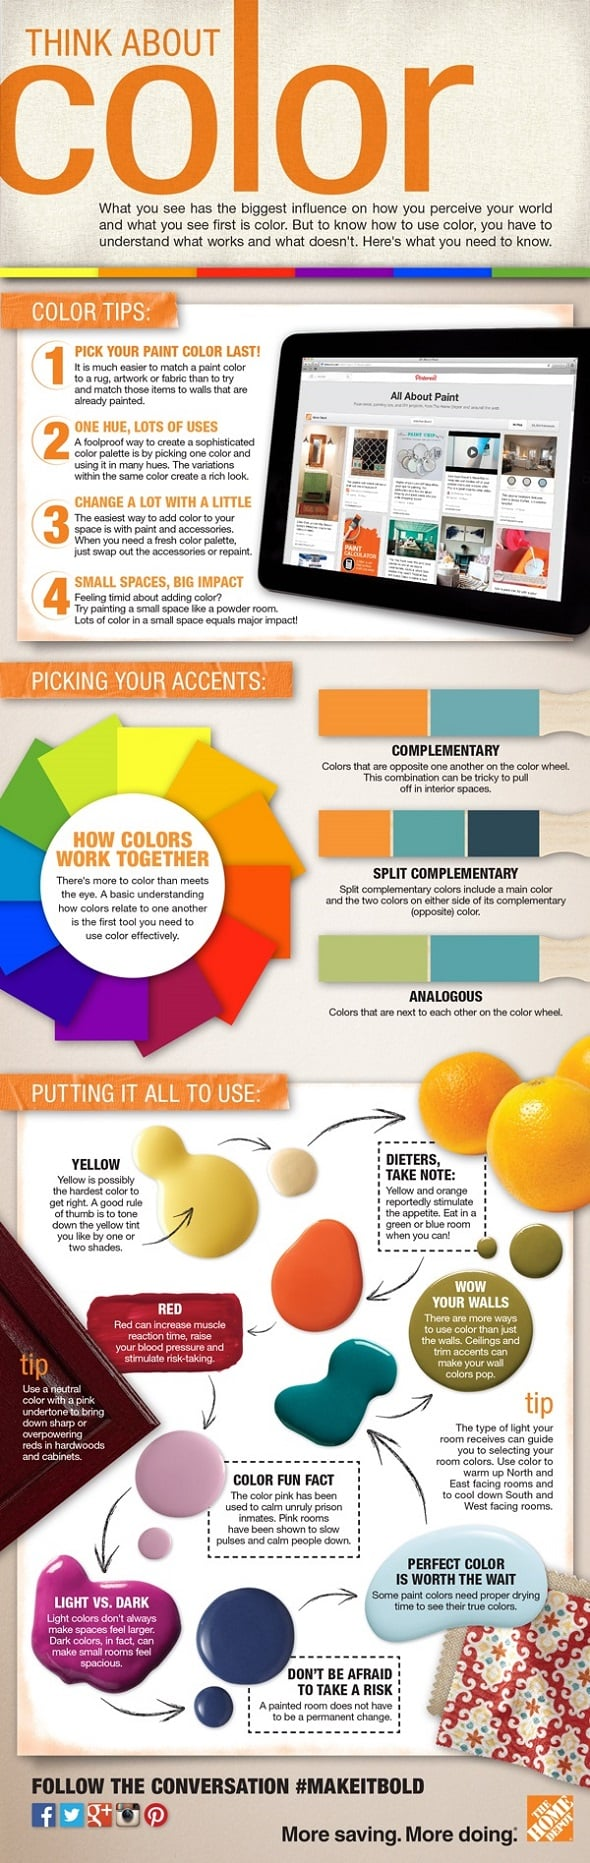 Using the Color Wheel